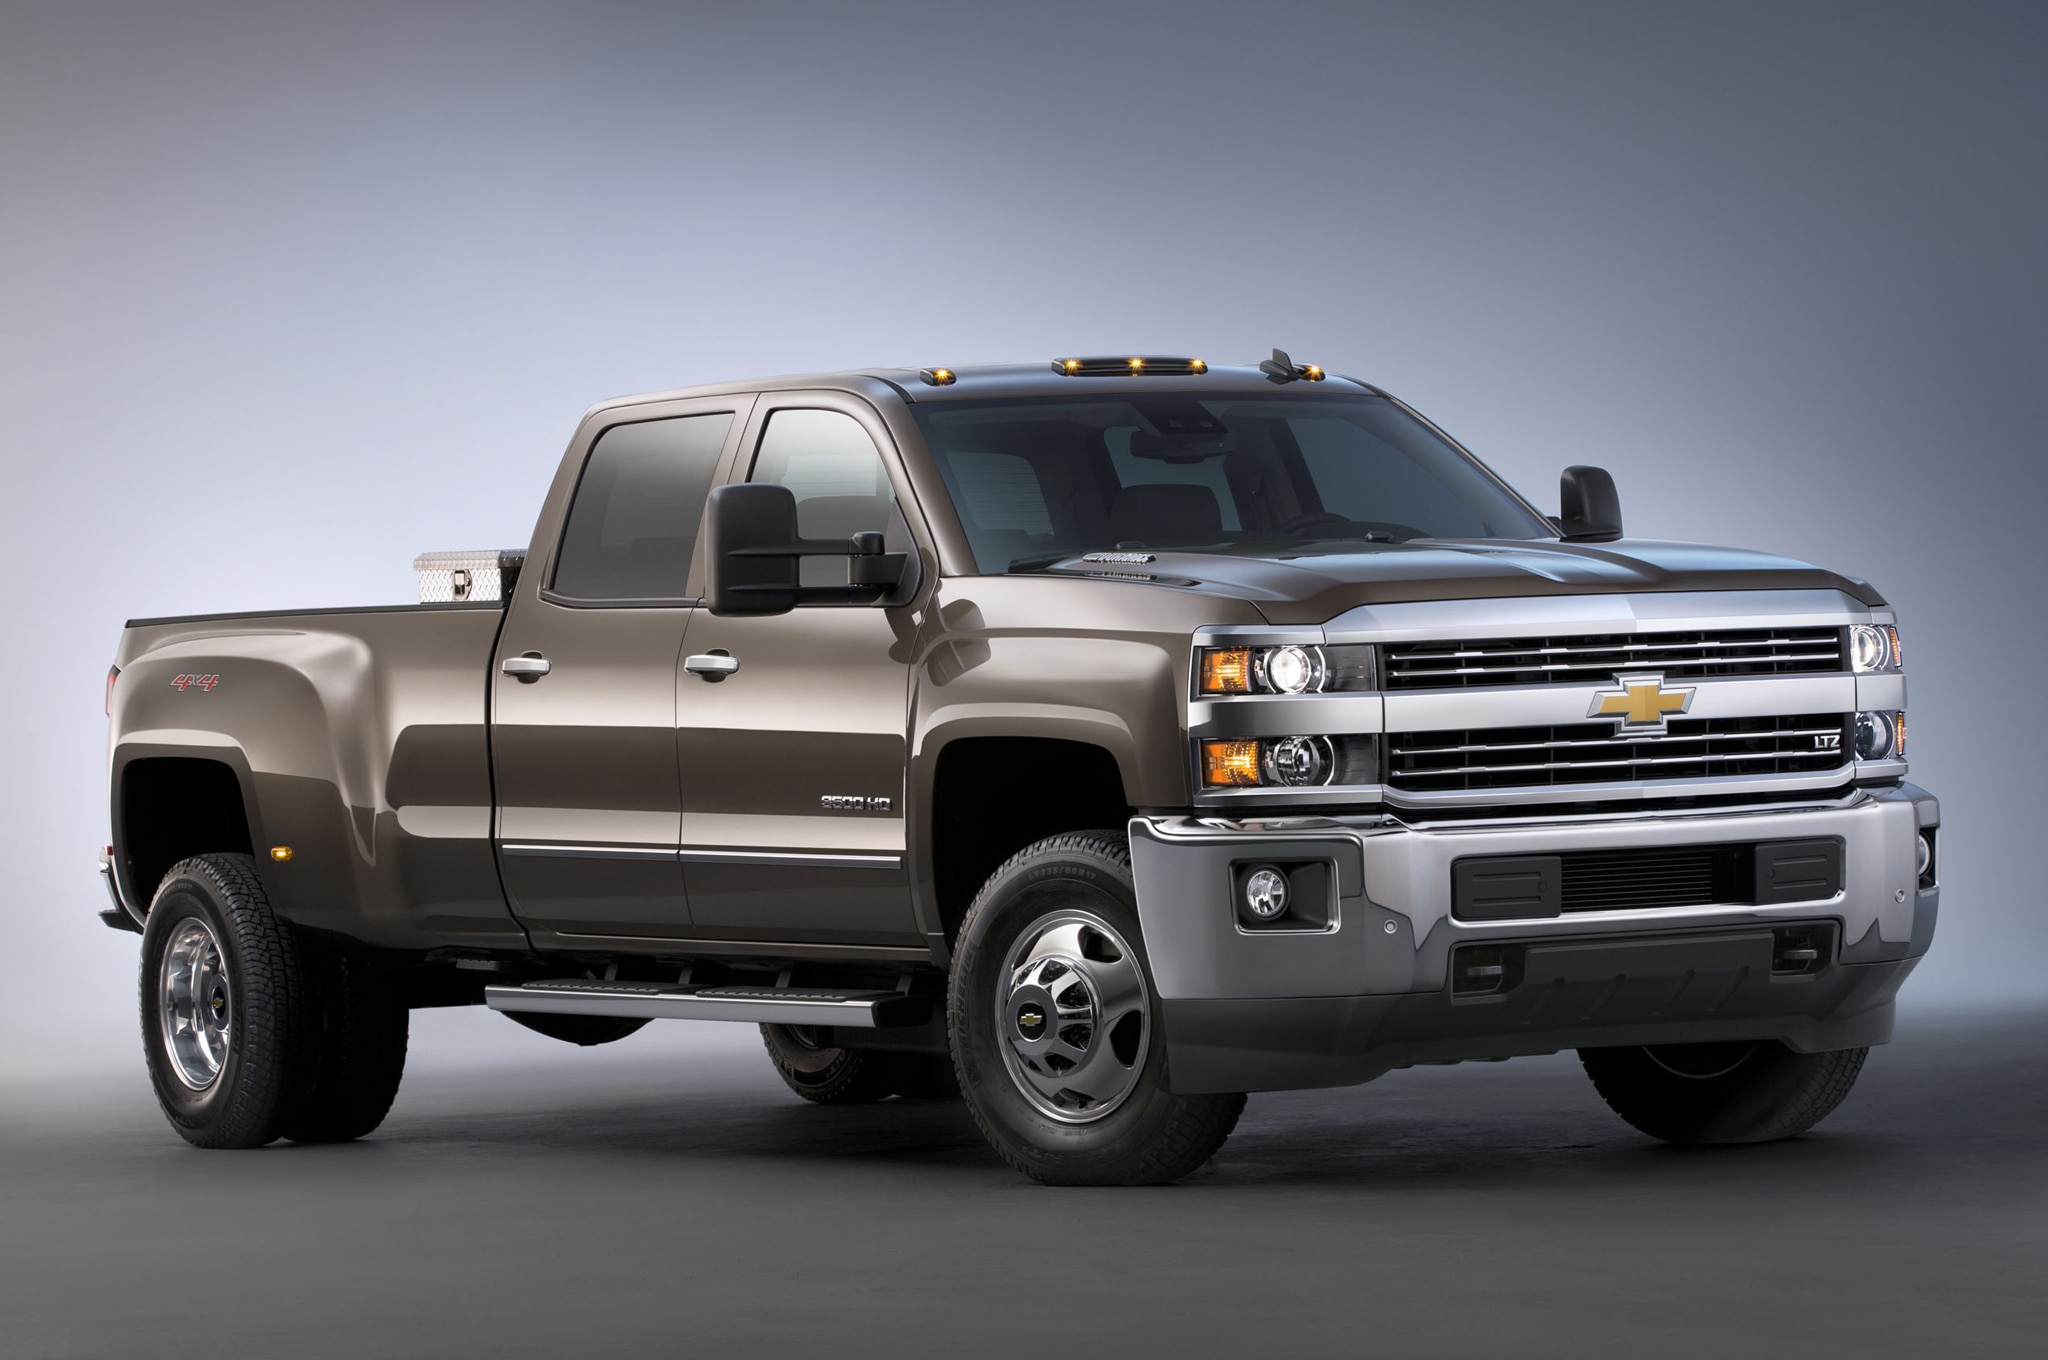 For the cab configurations gmc